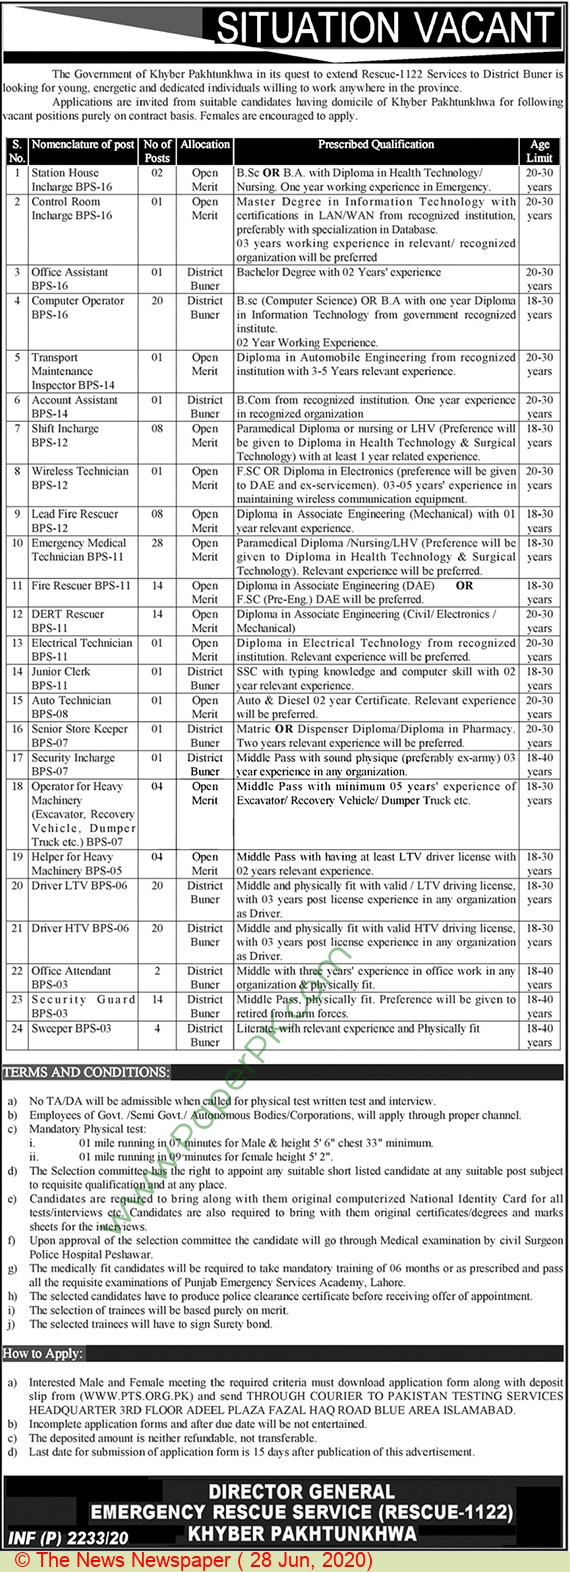 Kpk Emergency Rescue Service 1122 jobs newspaper ad for Sweeper in Peshawar